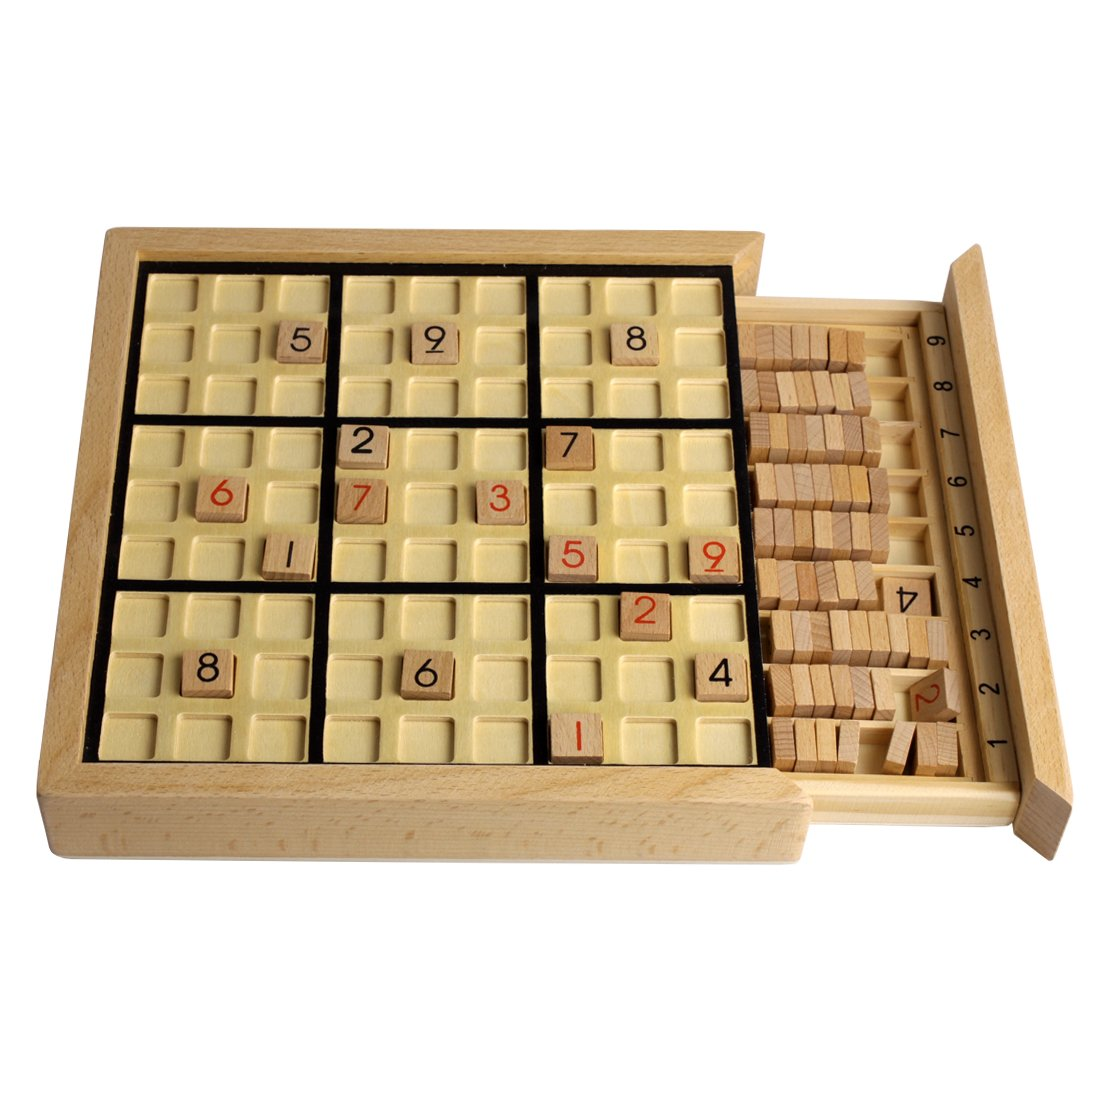 Andux Land Wooden Sudoku Puzzle Board Game with Drawer SD-02 (Black) by Andux